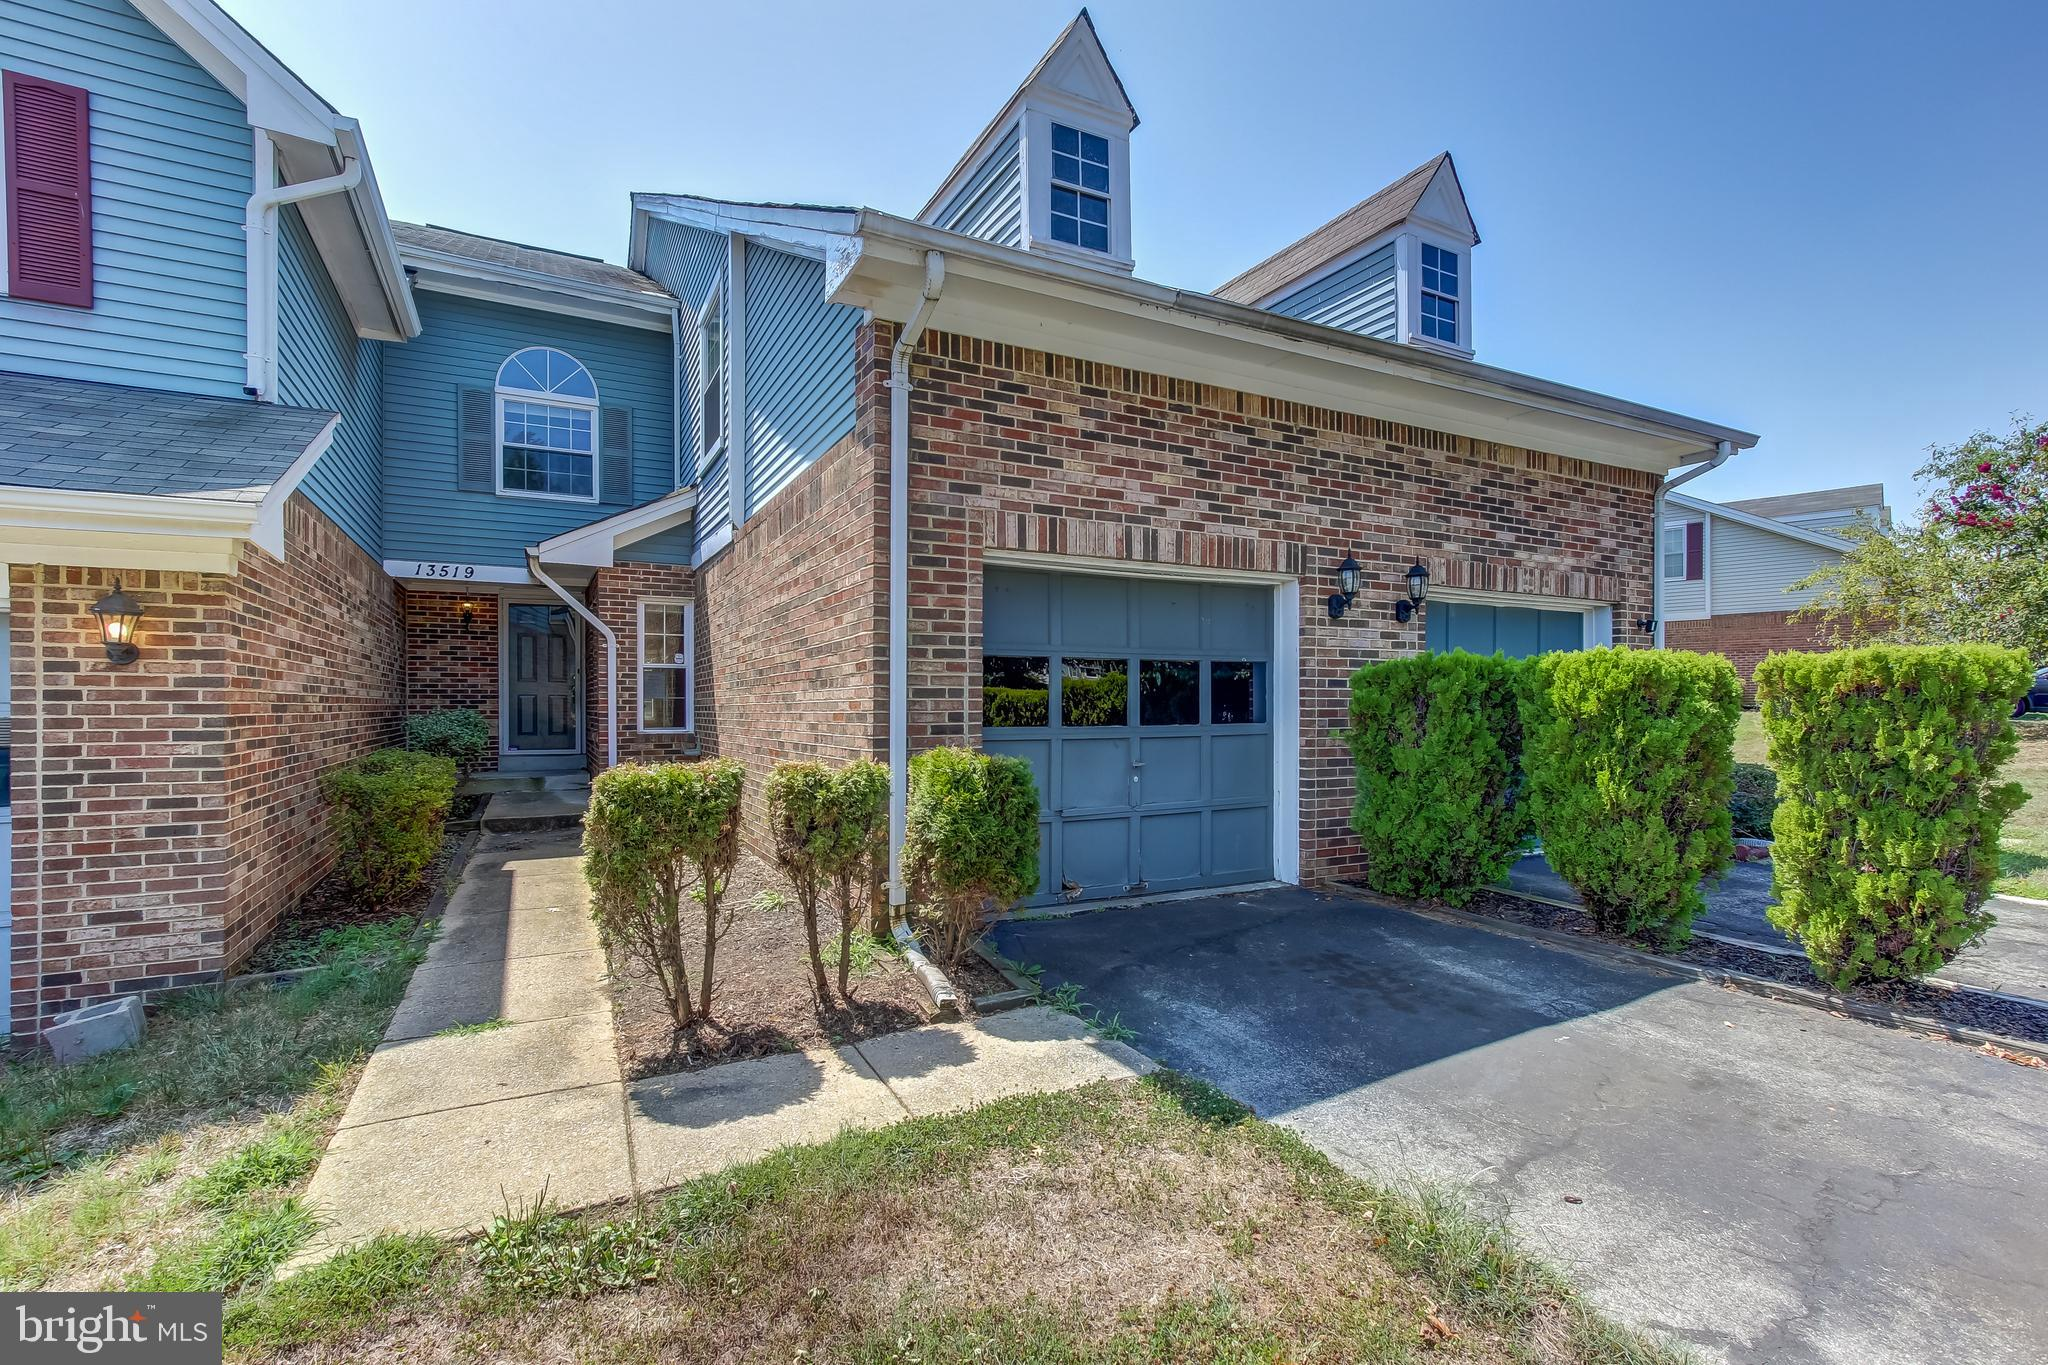 Wow! Tons of home for the money. This home has 3 bedrooms, 2 full and 1 half baths and has designer